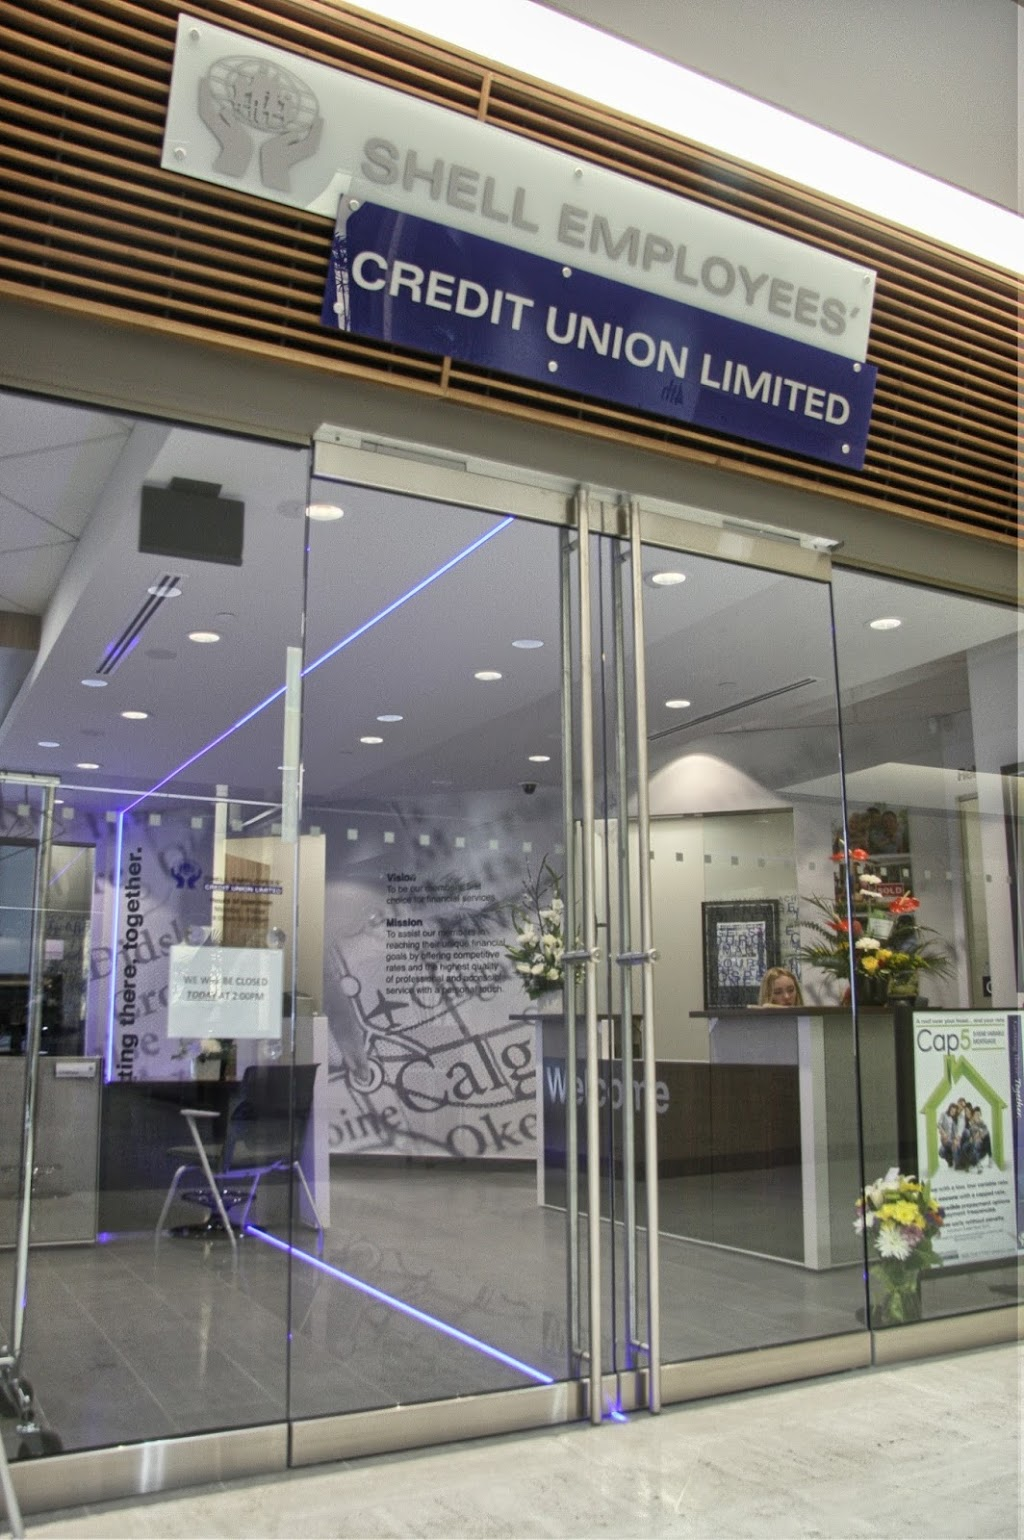 Shell Employees Credit Union LTD | atm | 400 4 Ave SW, Calgary, AB T2P 2V6, Canada | 4037187770 OR +1 403-718-7770